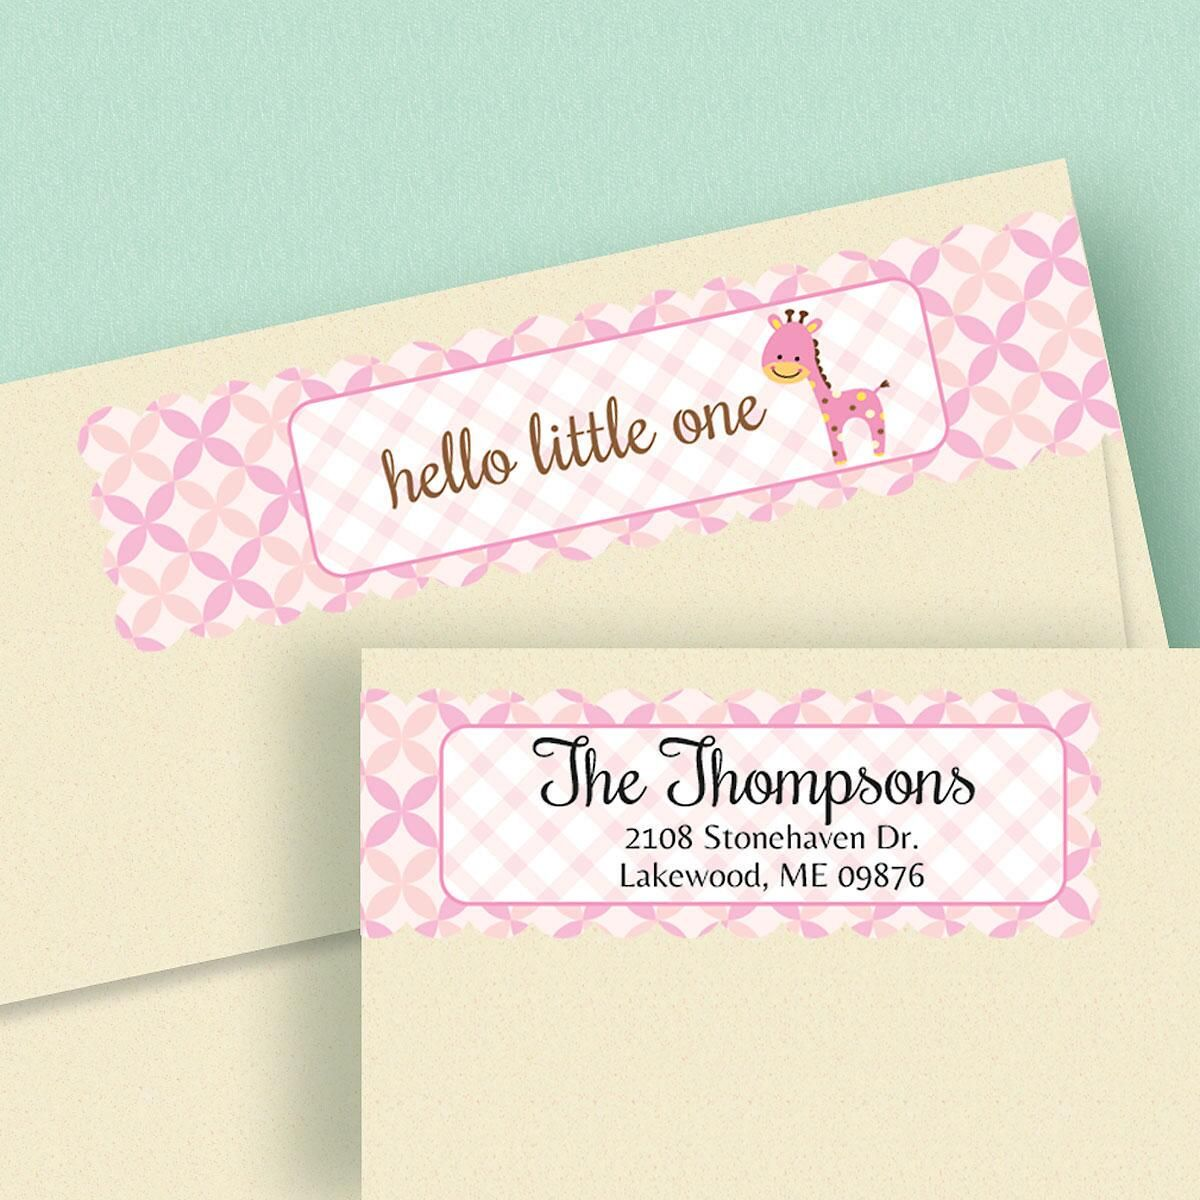 Delightful Baby Connect Wrap Around Diecut Address Labels  (4 Designs)